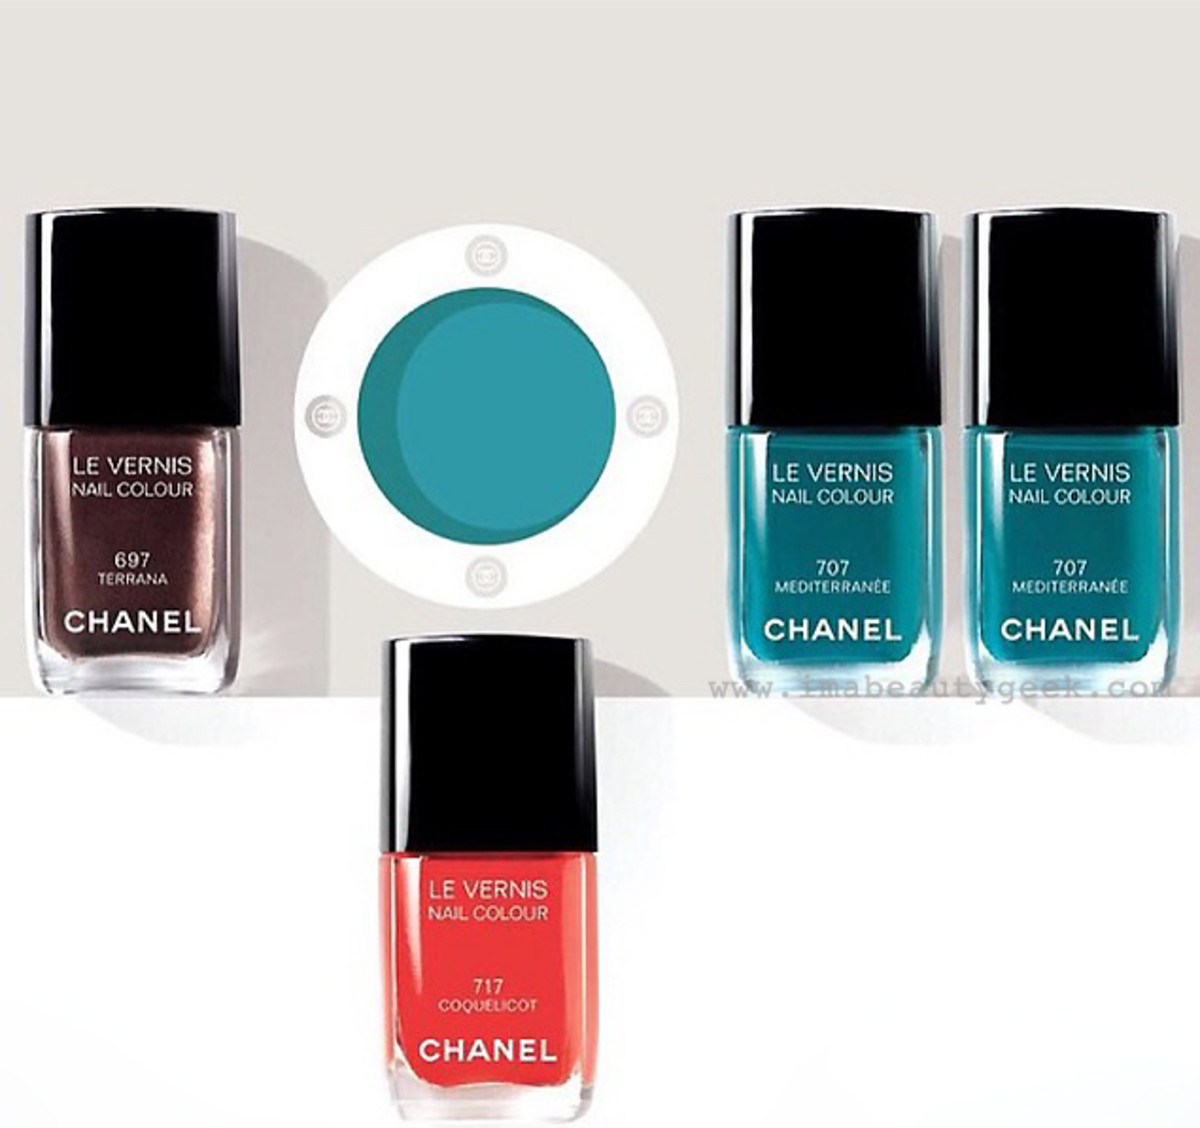 Chanel Summer 2015 makeup: Méditerranée collection Les Vernis Terrana, Mediterranee and Coquelicot